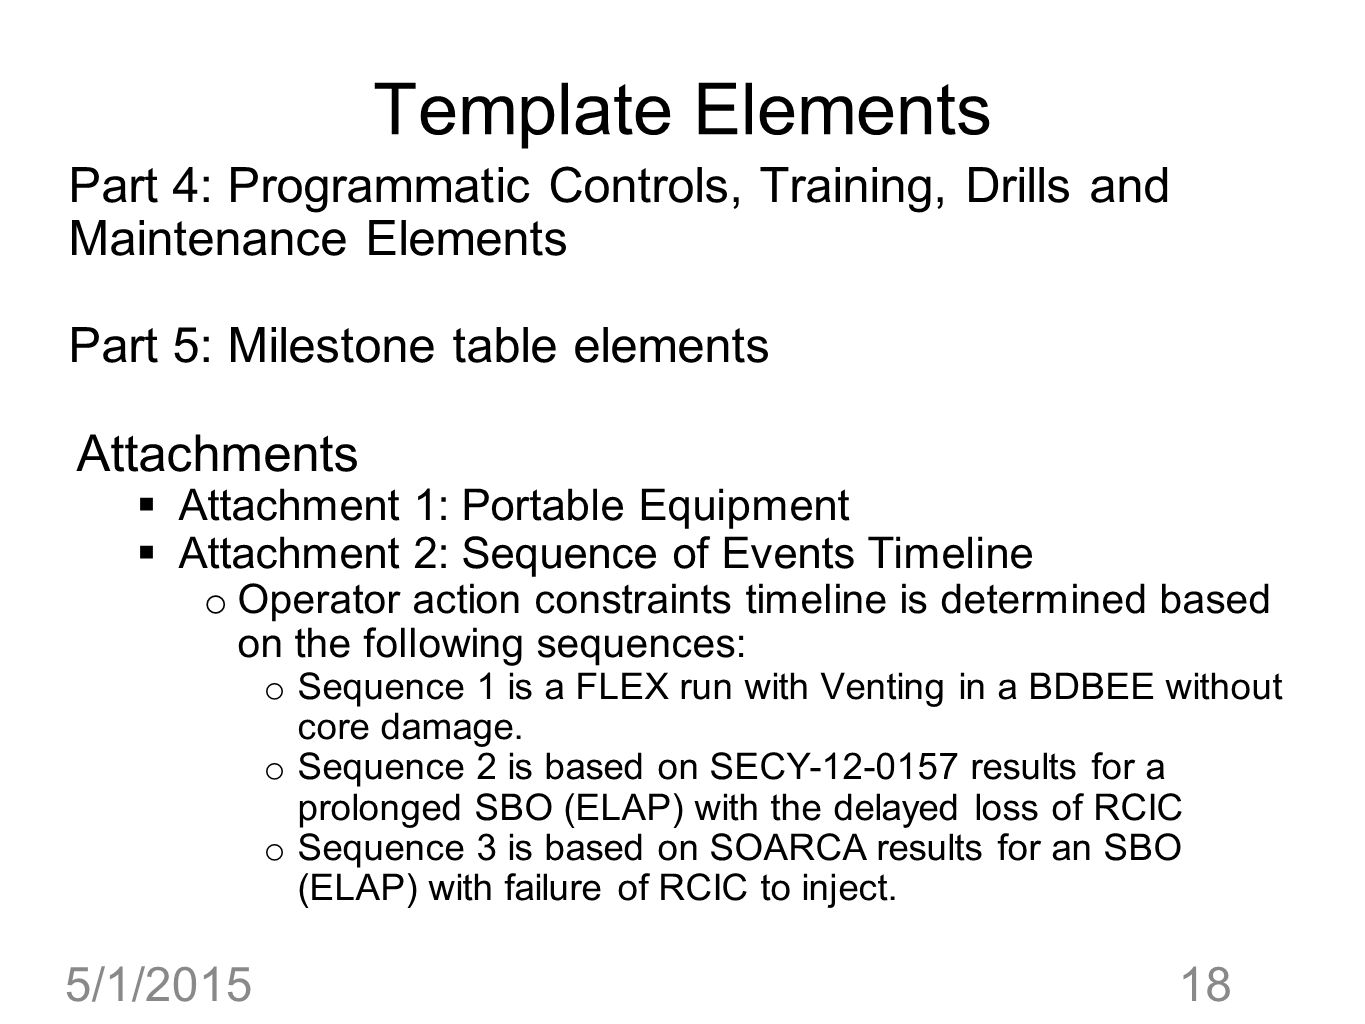 Template Elements Attachments